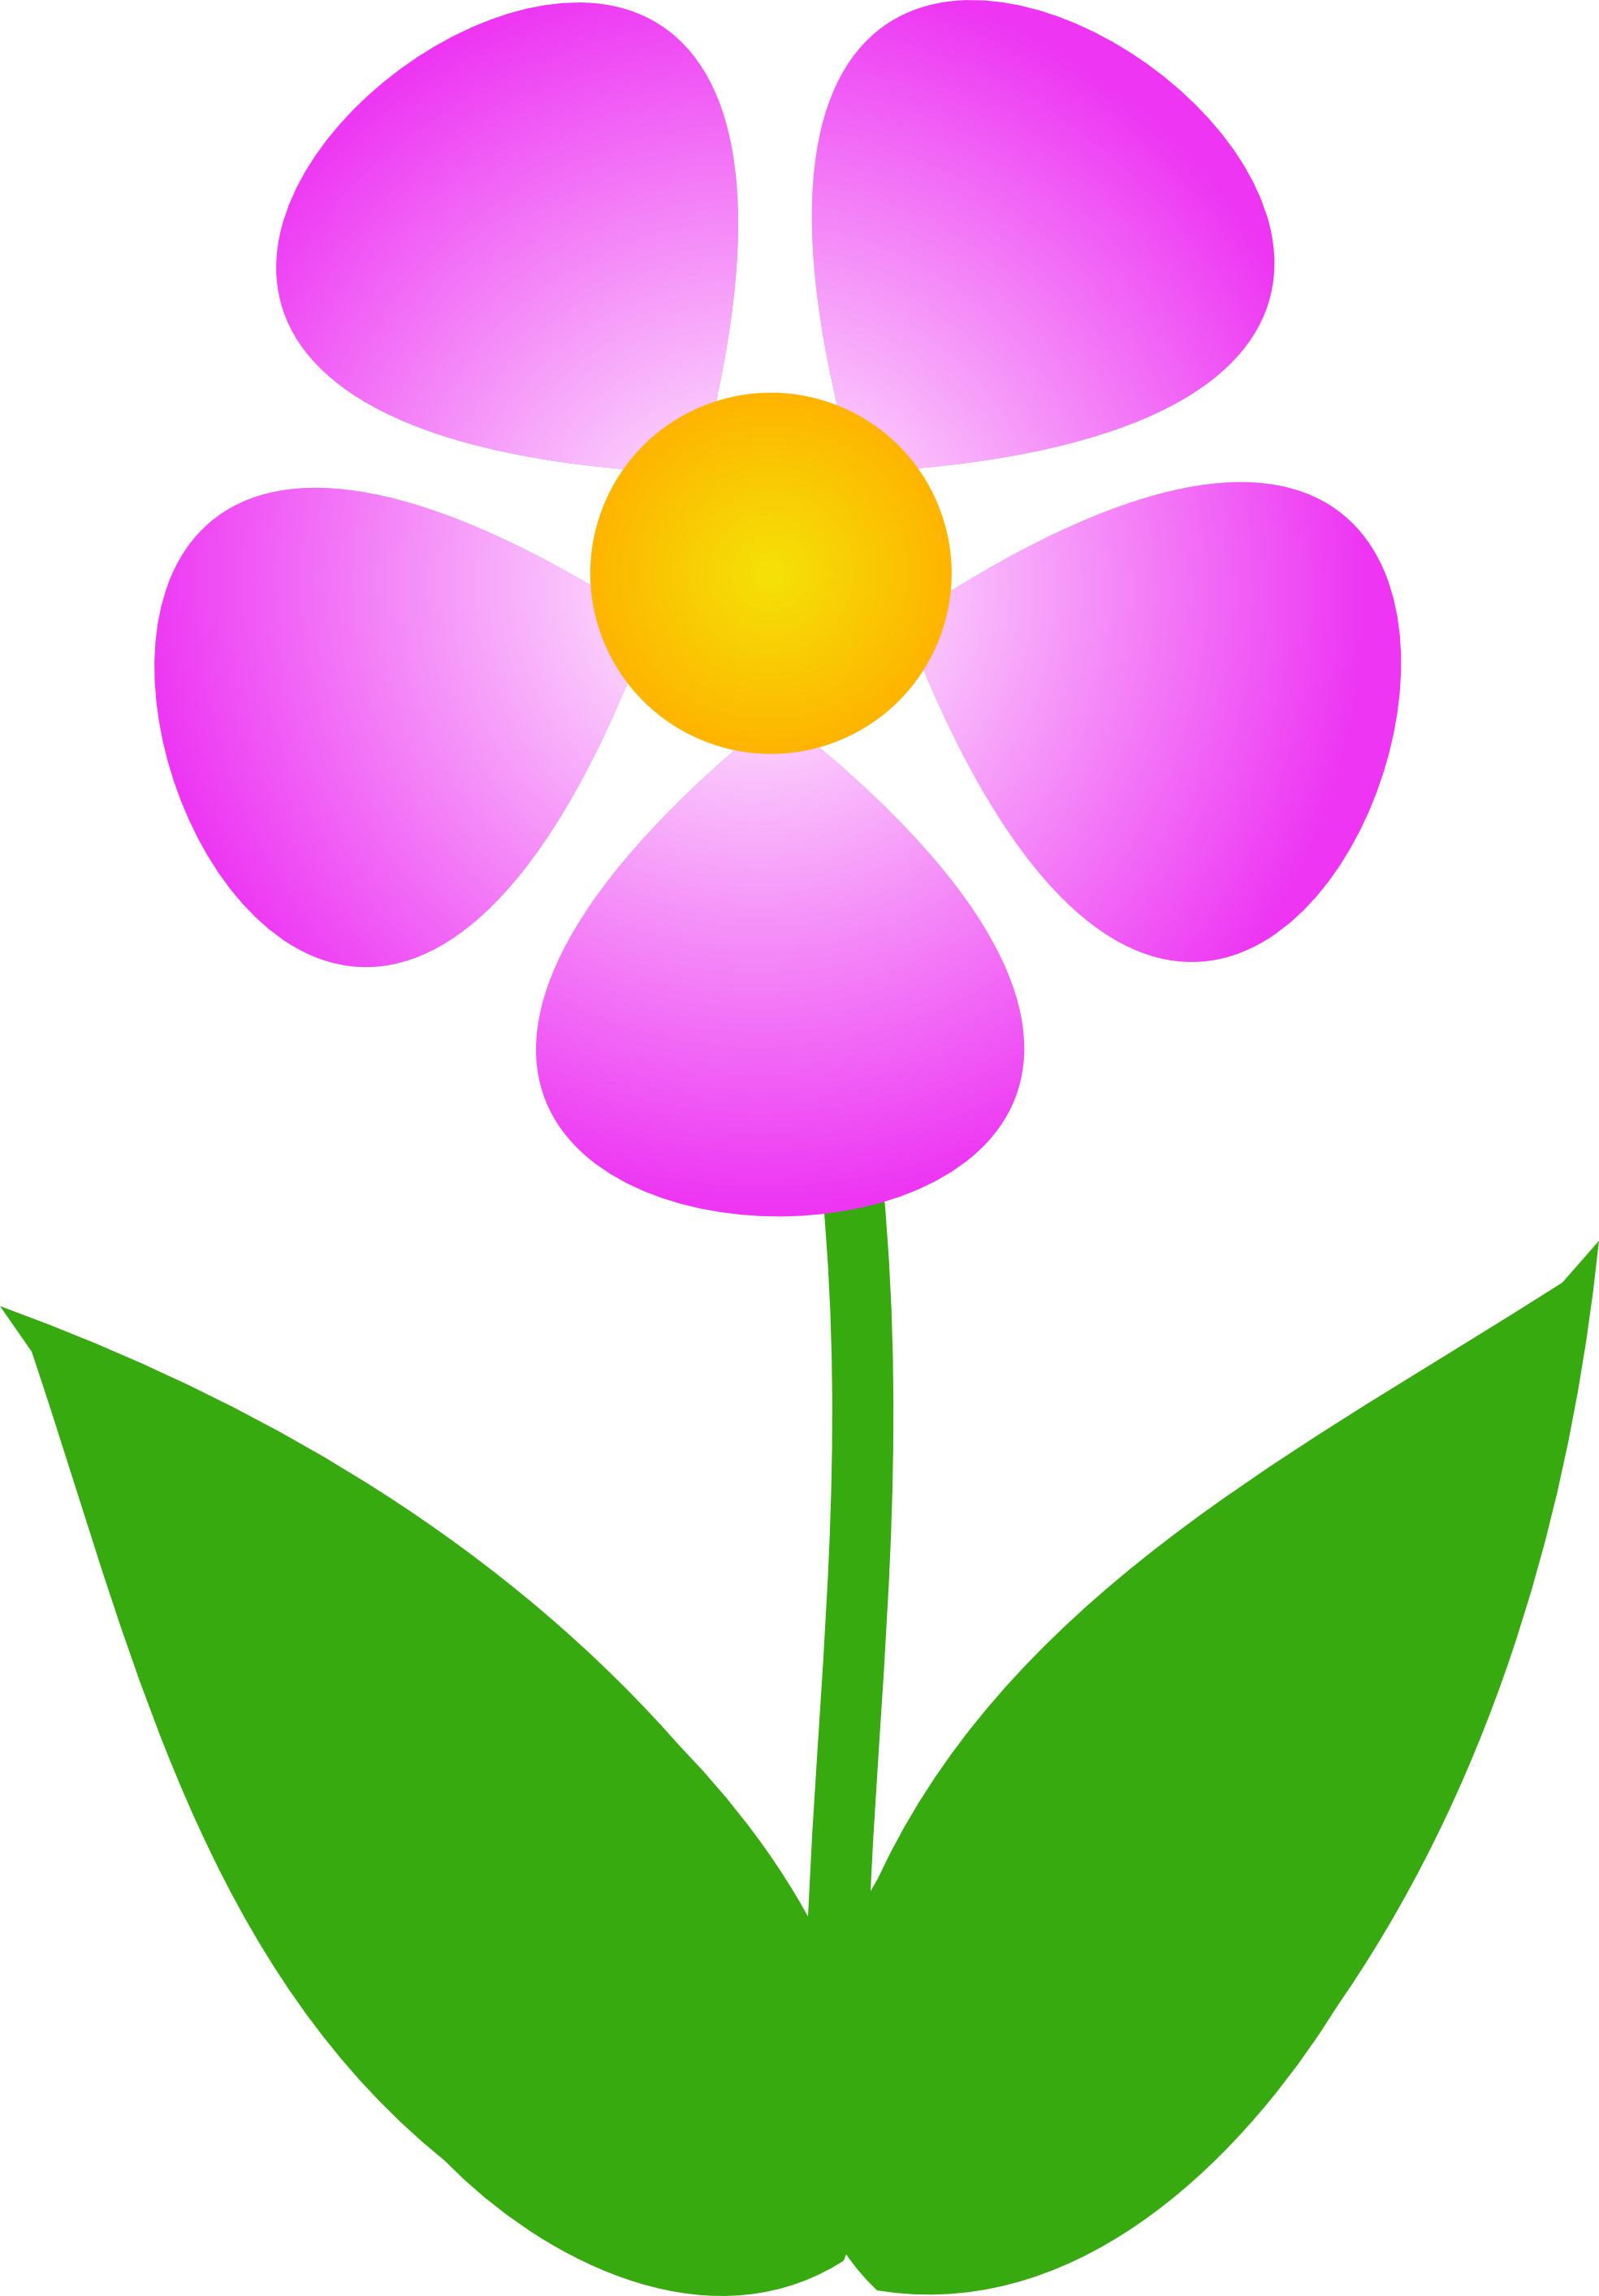 Flower Stem Clip Art - Cliparts.co